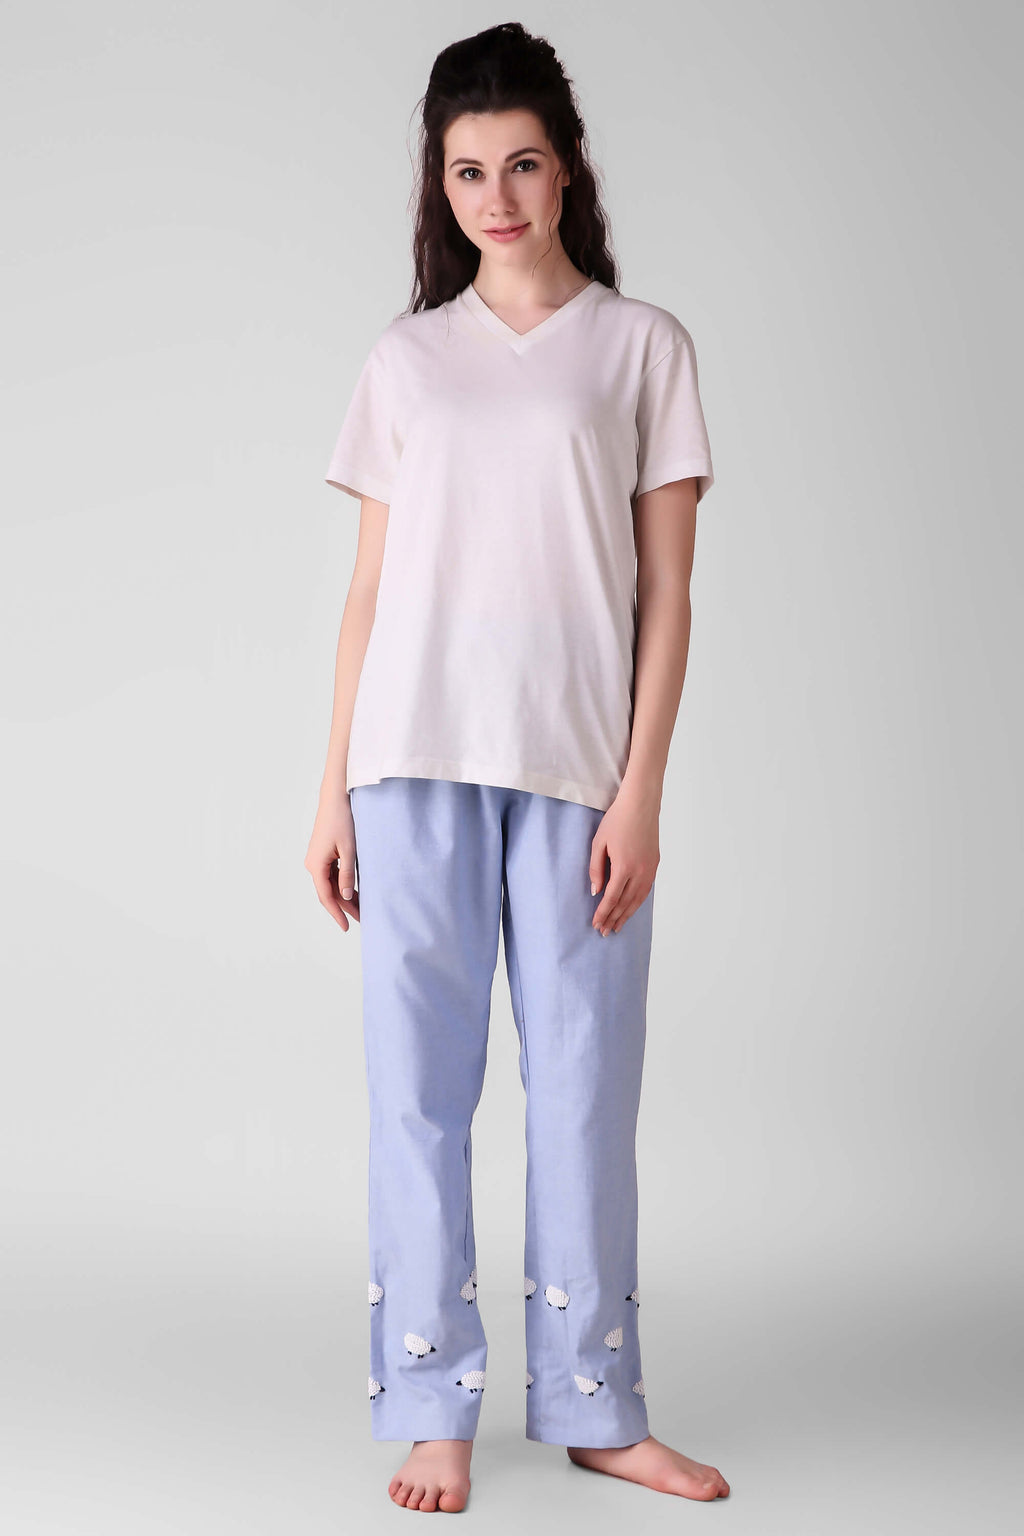 Lazy Sheep, Unisex Pyjamas